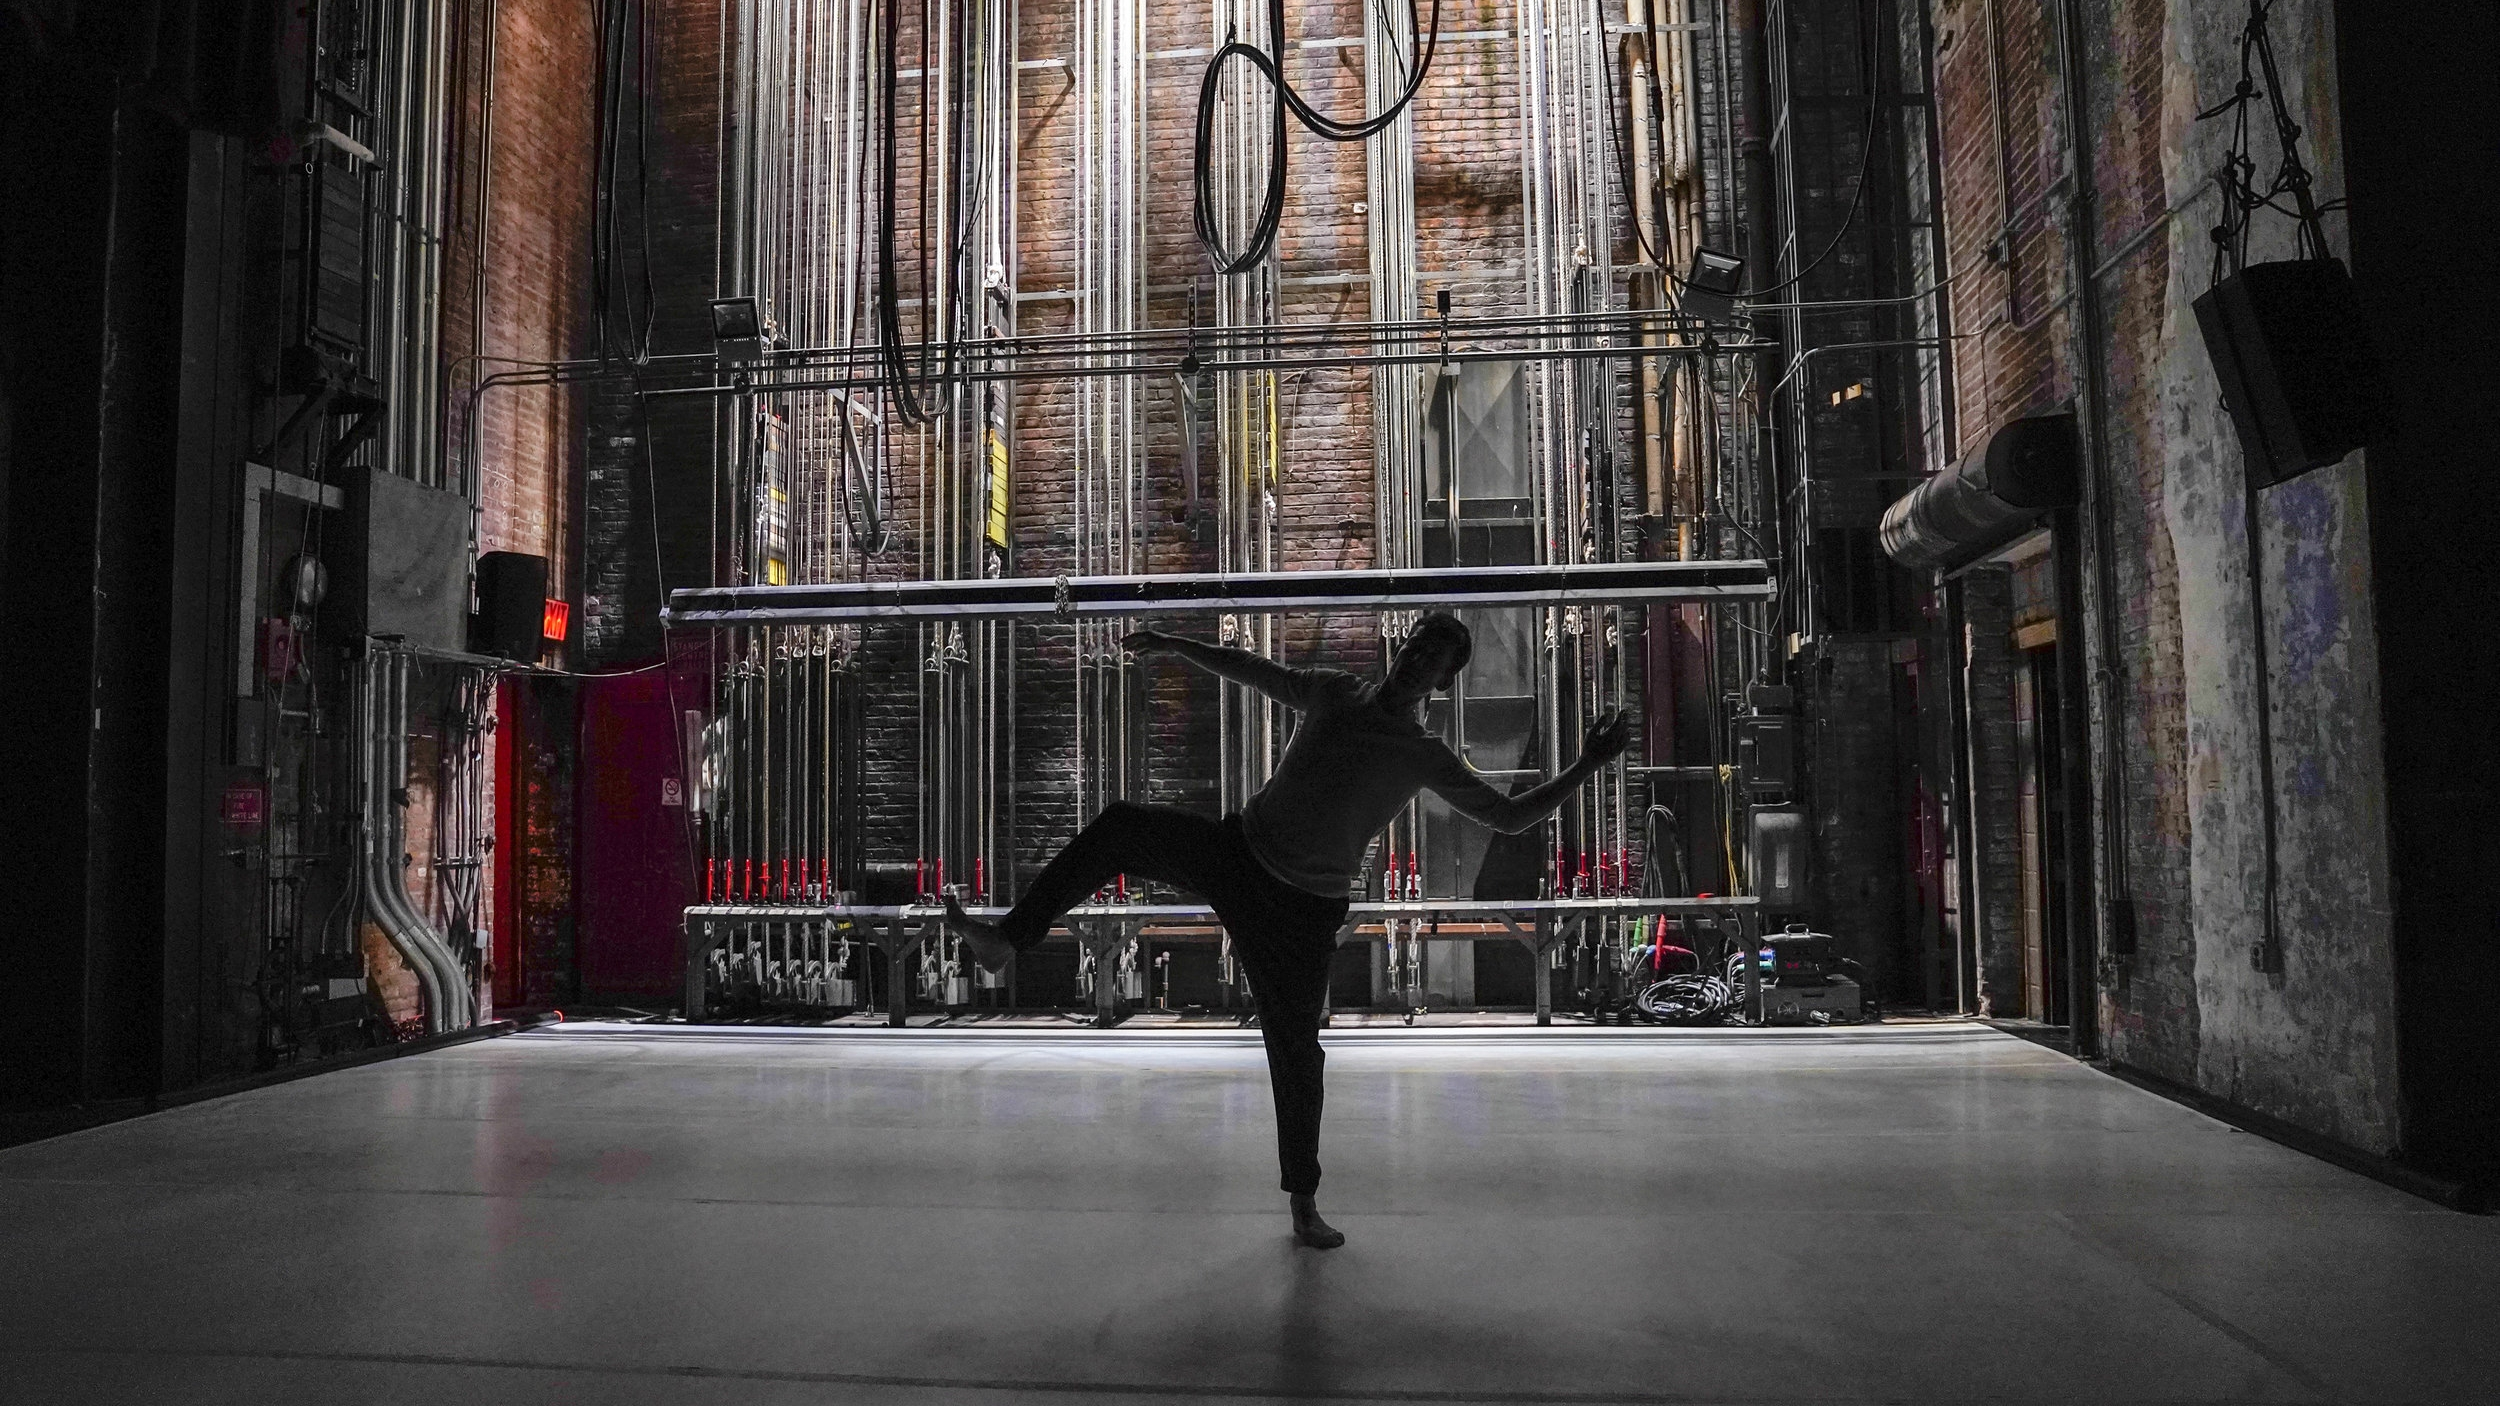 Dylan Crossman in Here We Are. Photo by John Suhar.